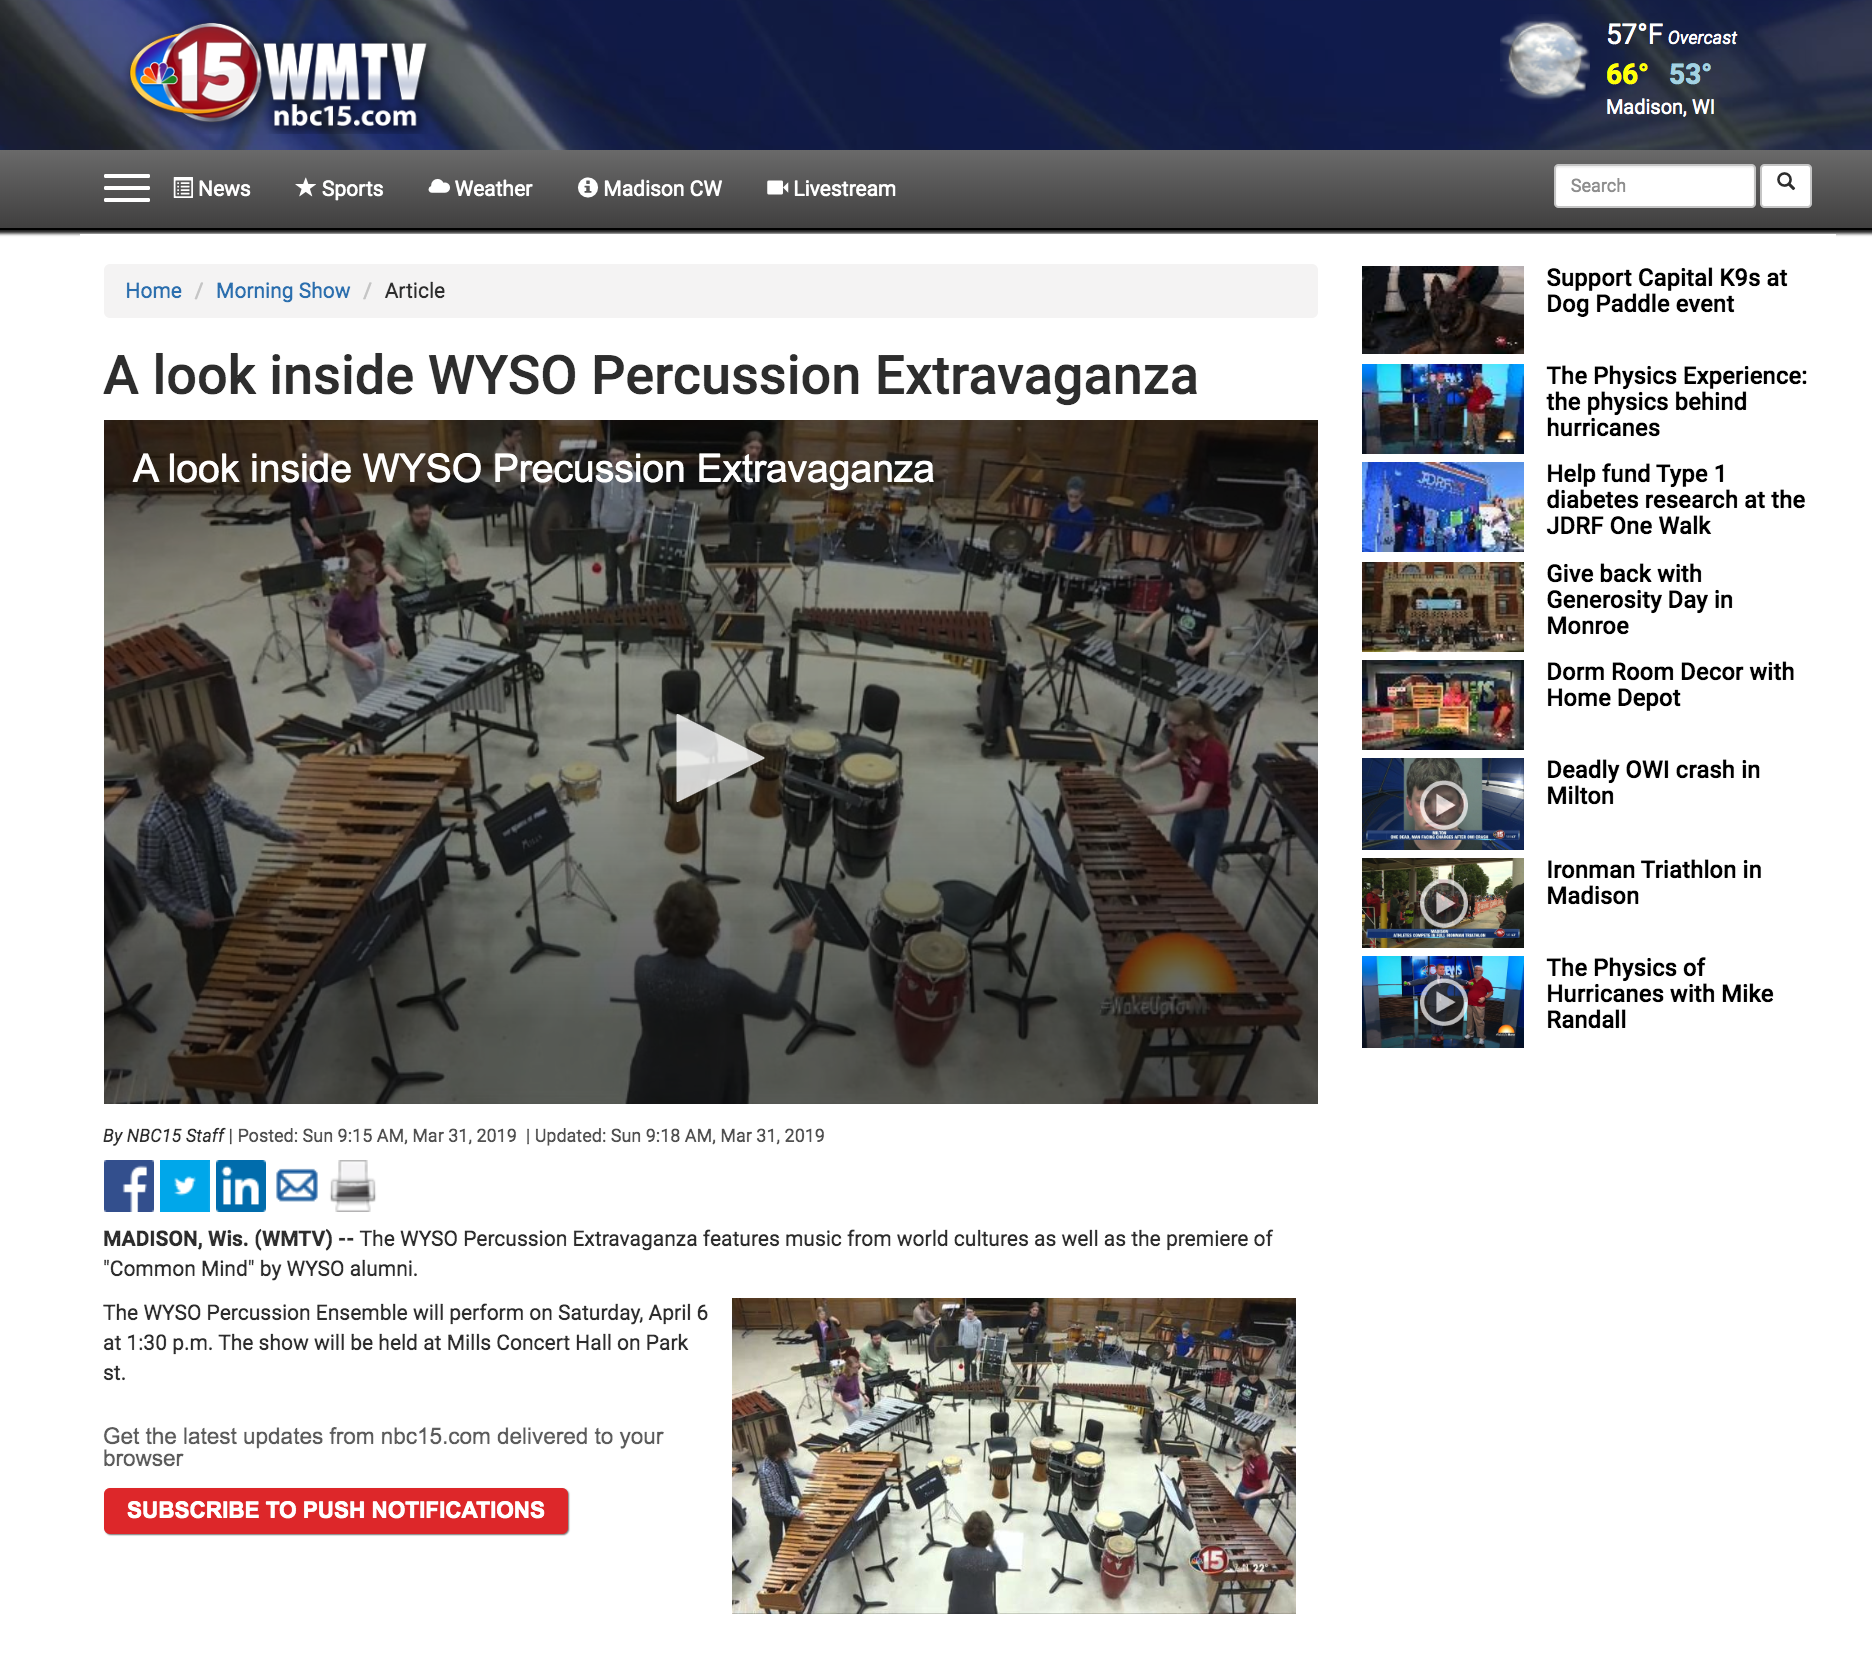 View Original Article Online:  https://www.nbc15.com/content/news/A-look-inside-WYSO-Percussion-Extravaganza-507908531.html